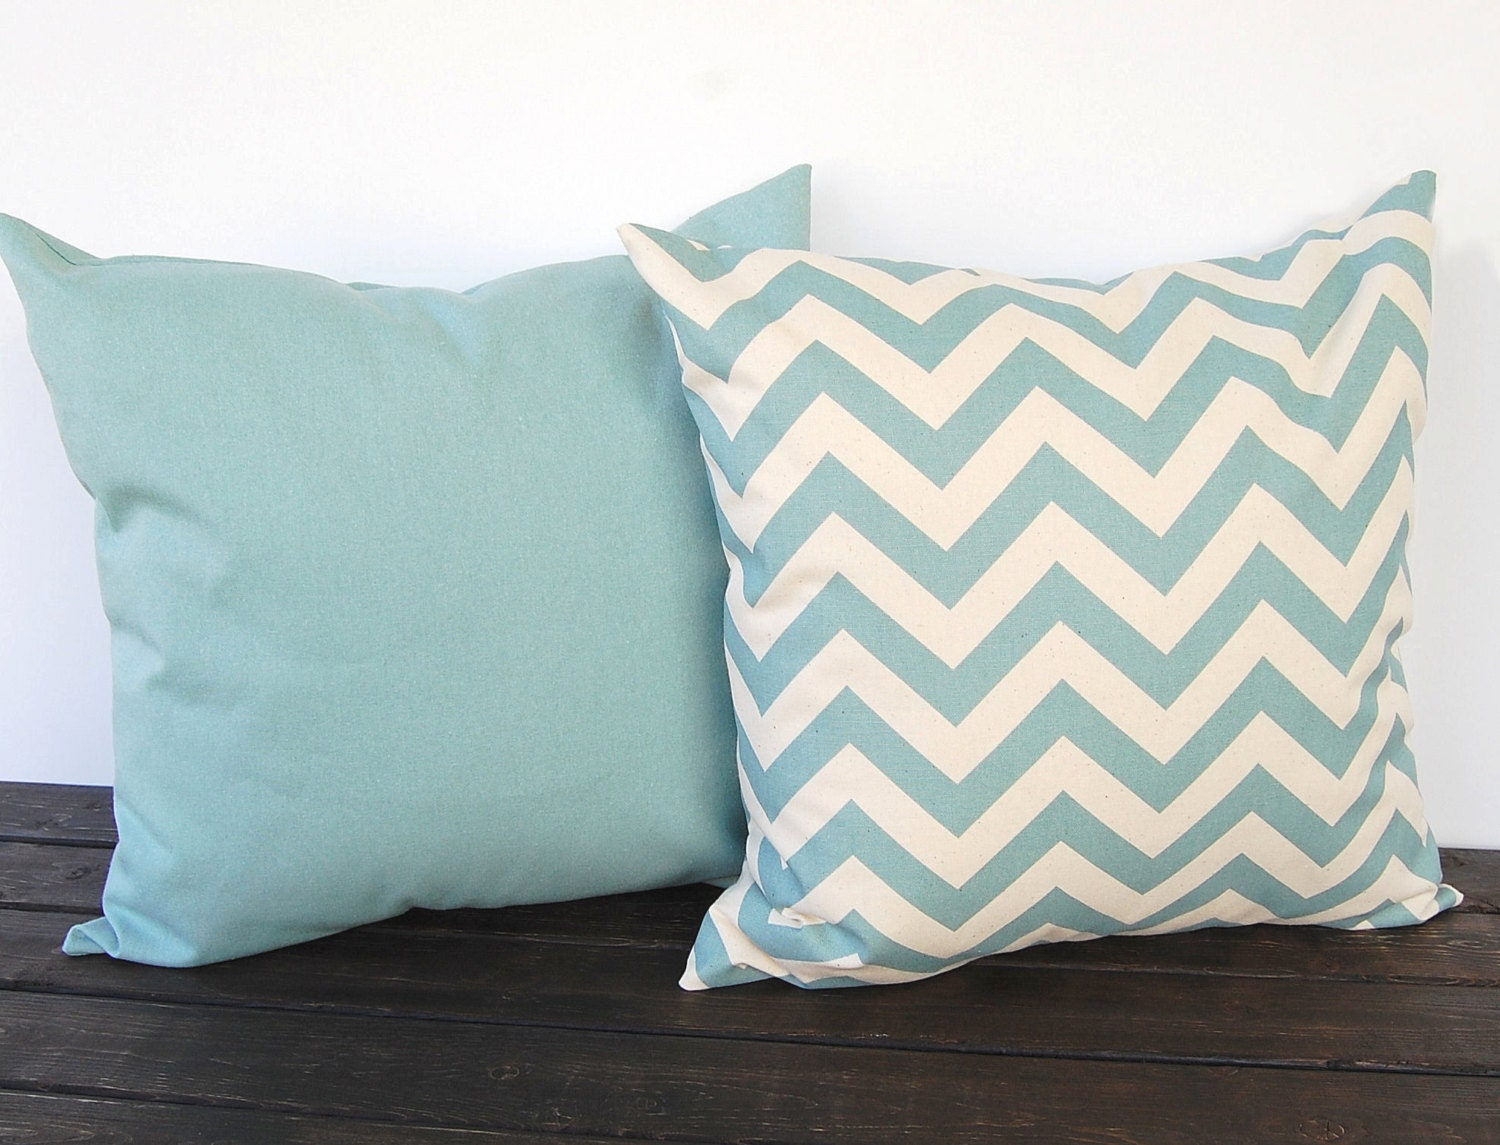 Smokey Blue Throw Pillows : Throw pillow covers pair chevron cushion cover by ThePillowPeople